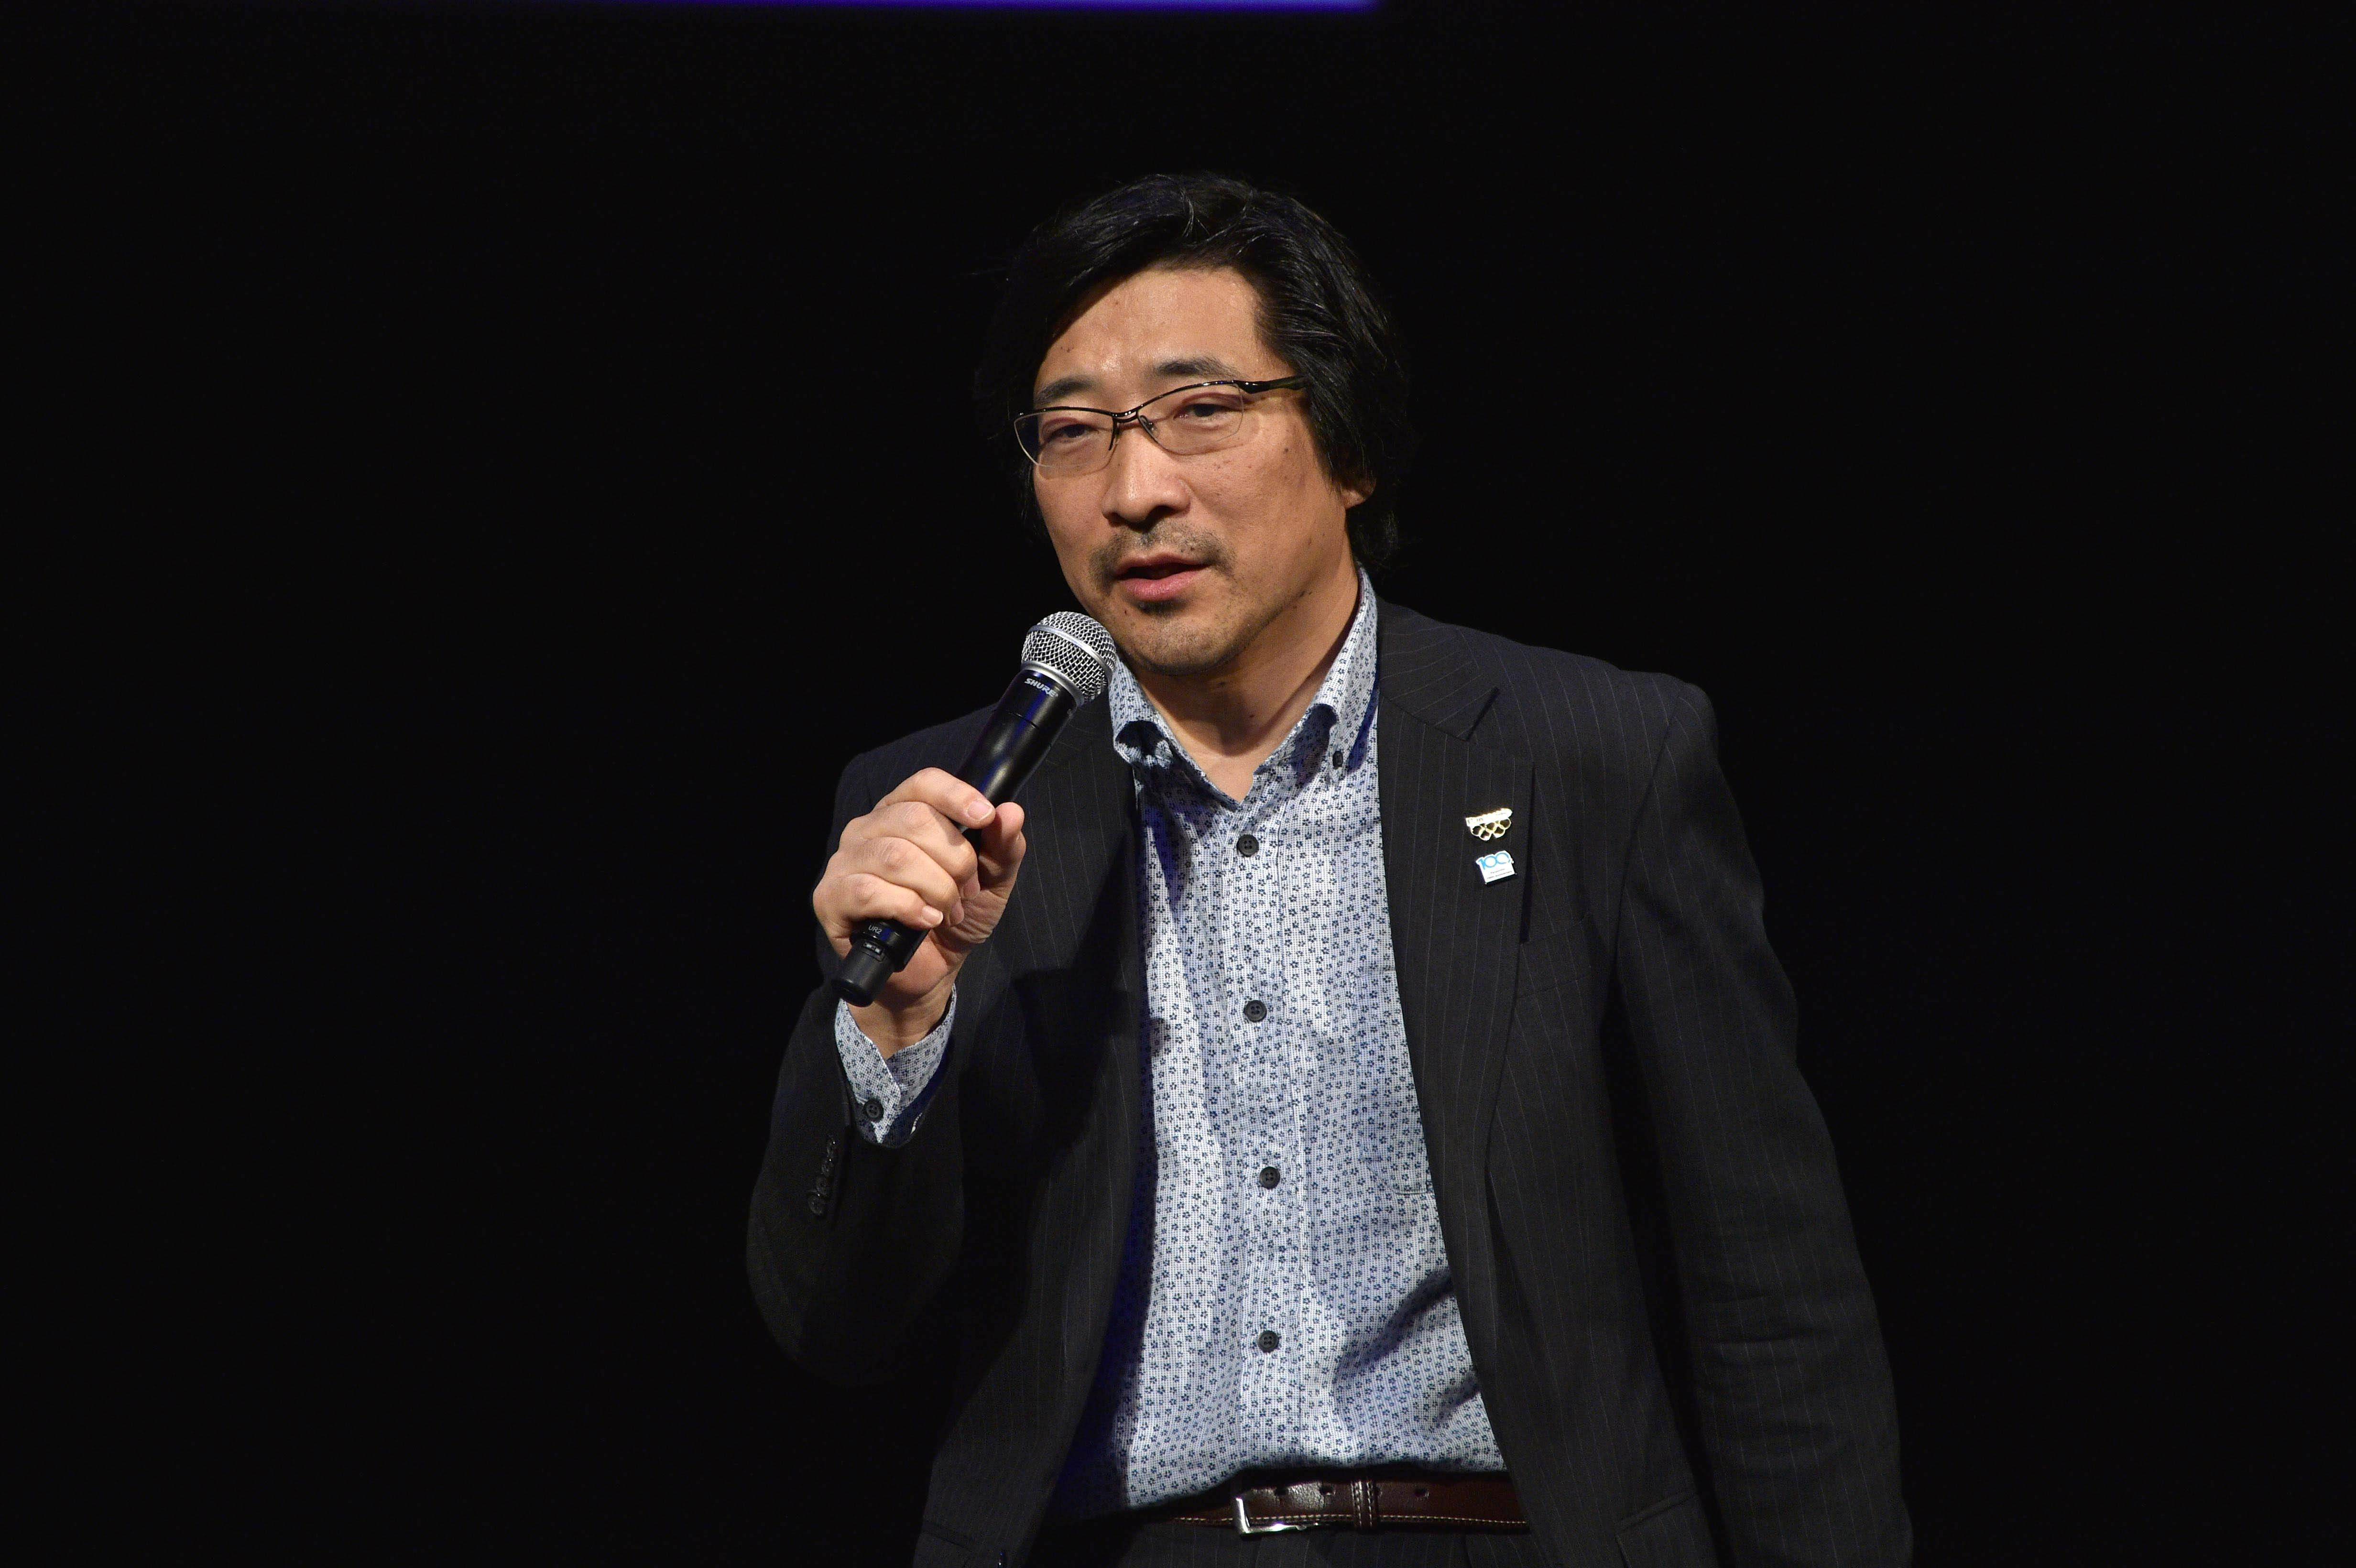 3_Game Changer Catapultについて話す深田代表_Masa Fukata talking about Game Changer Catapult.JPG